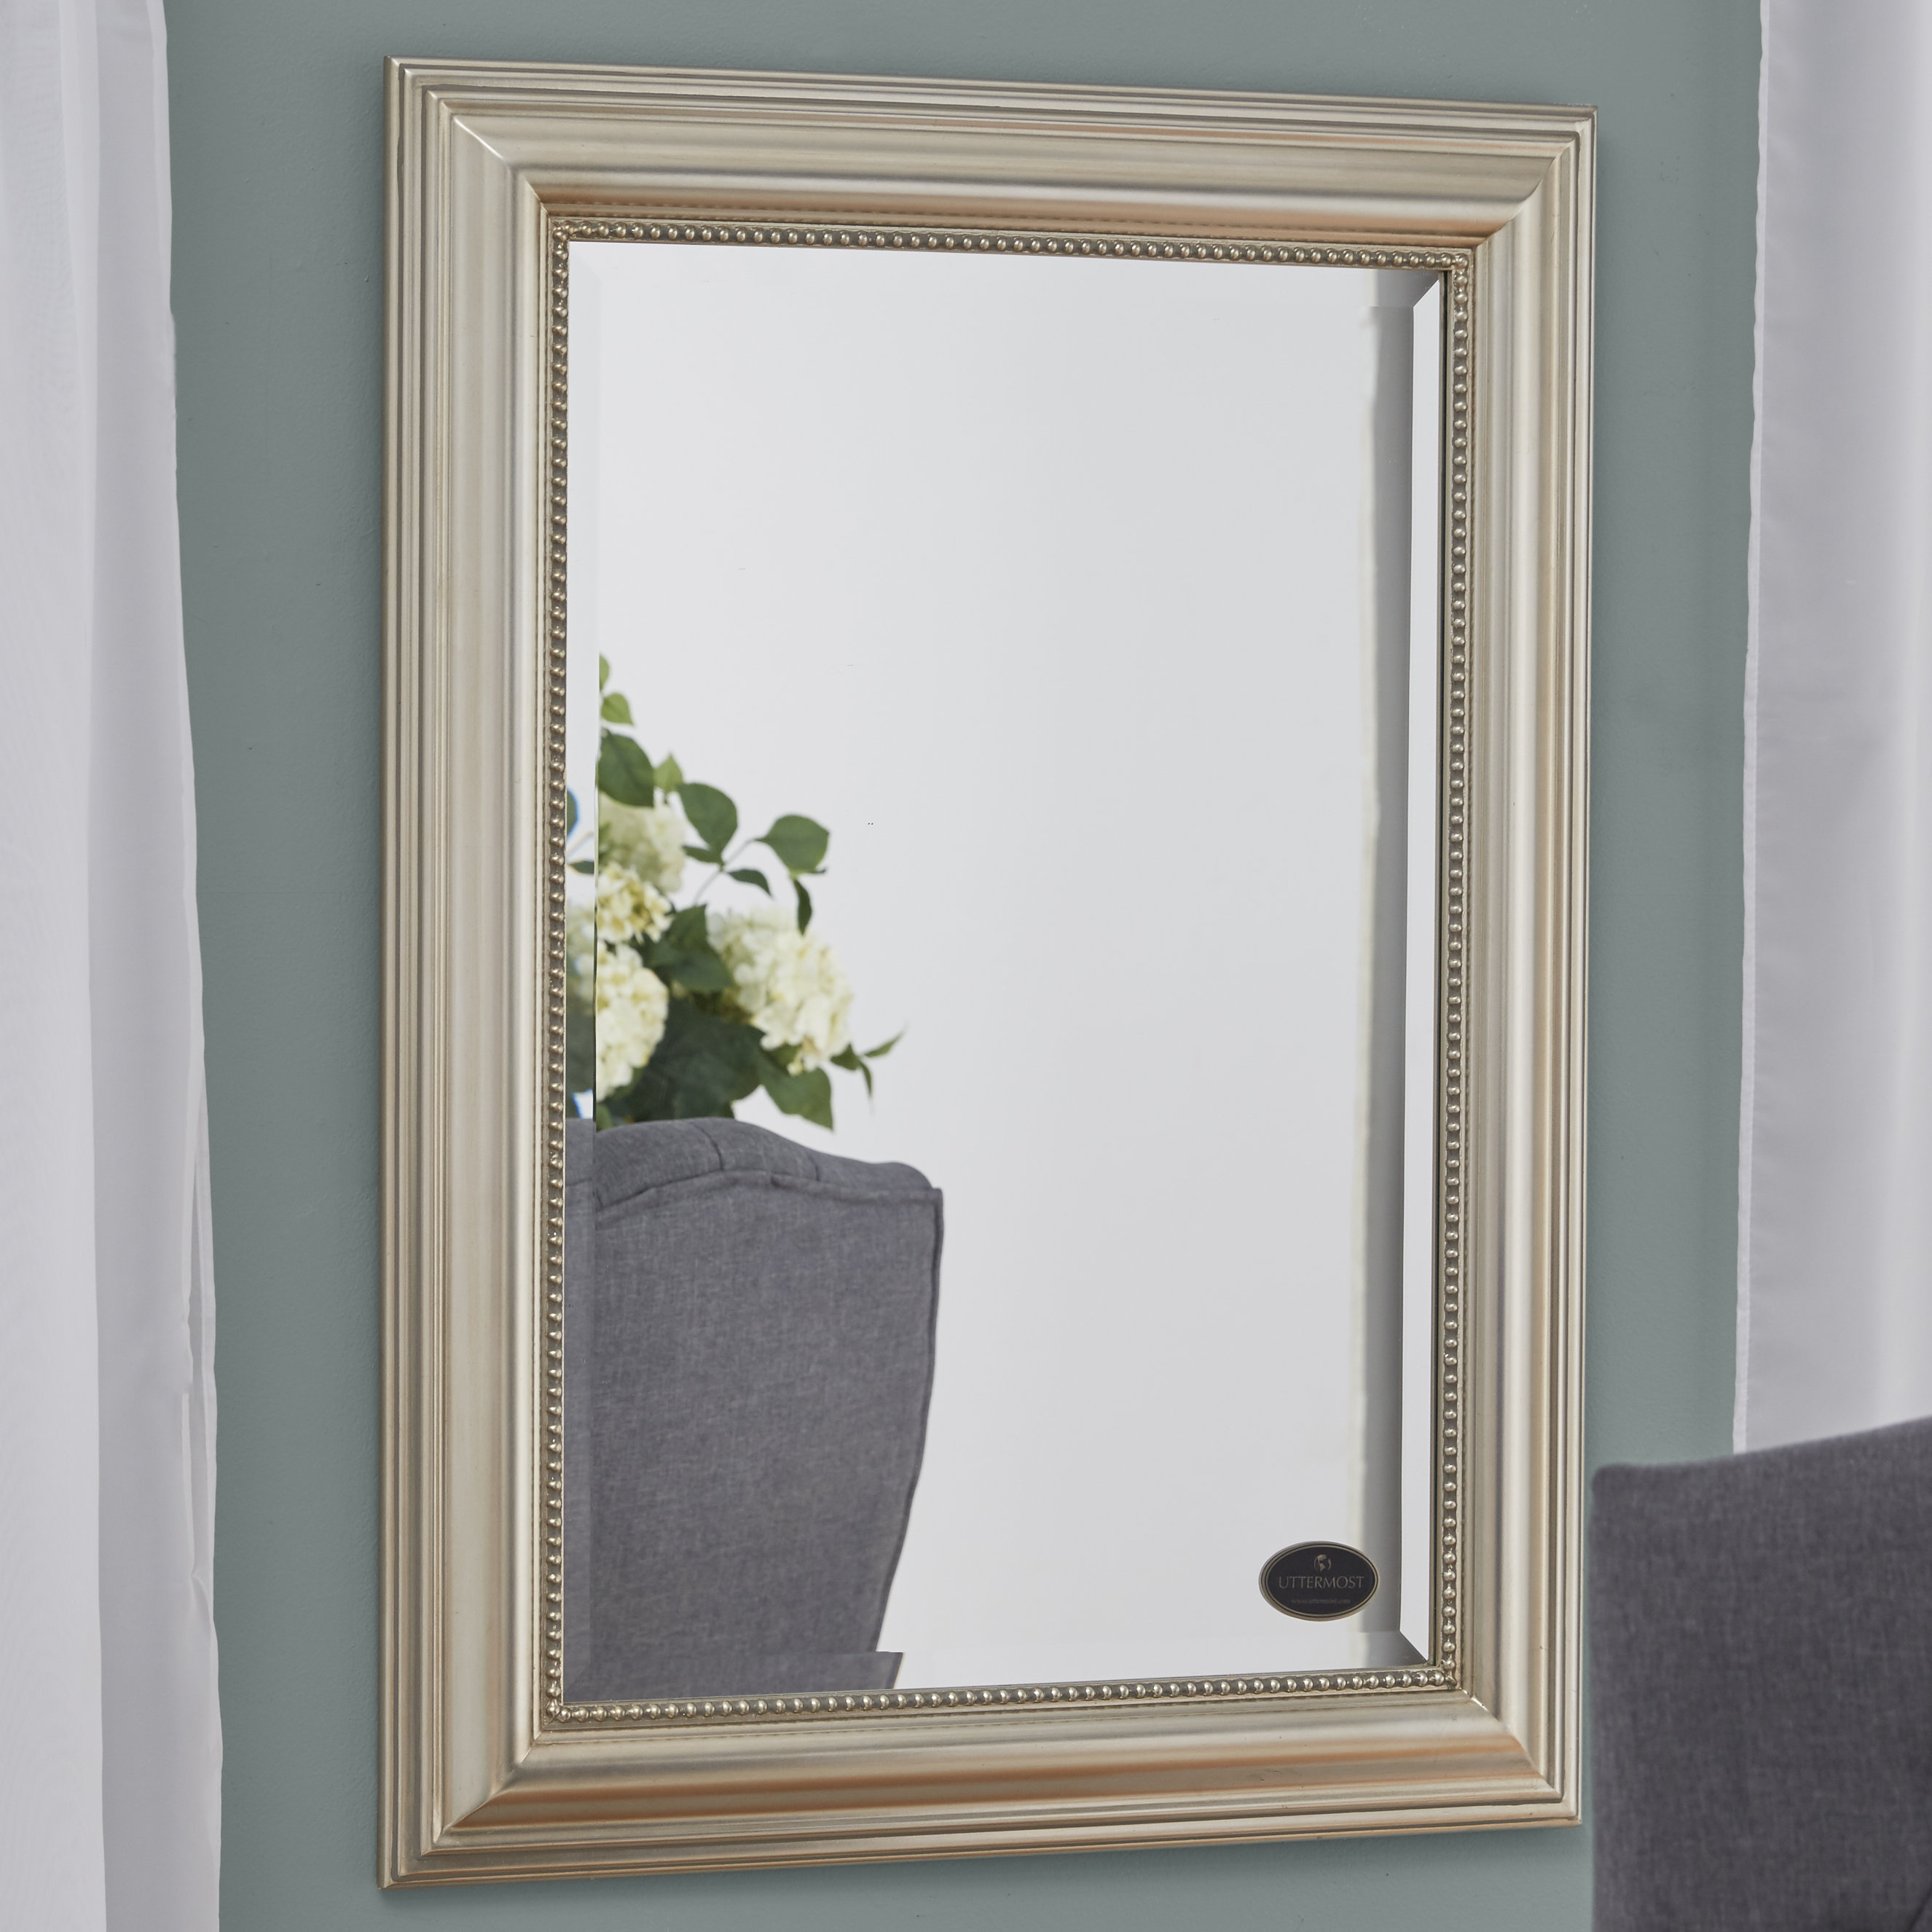 Owens Accent Mirror With Dedrick Decorative Framed Modern And Contemporary Wall Mirrors (Image 14 of 20)